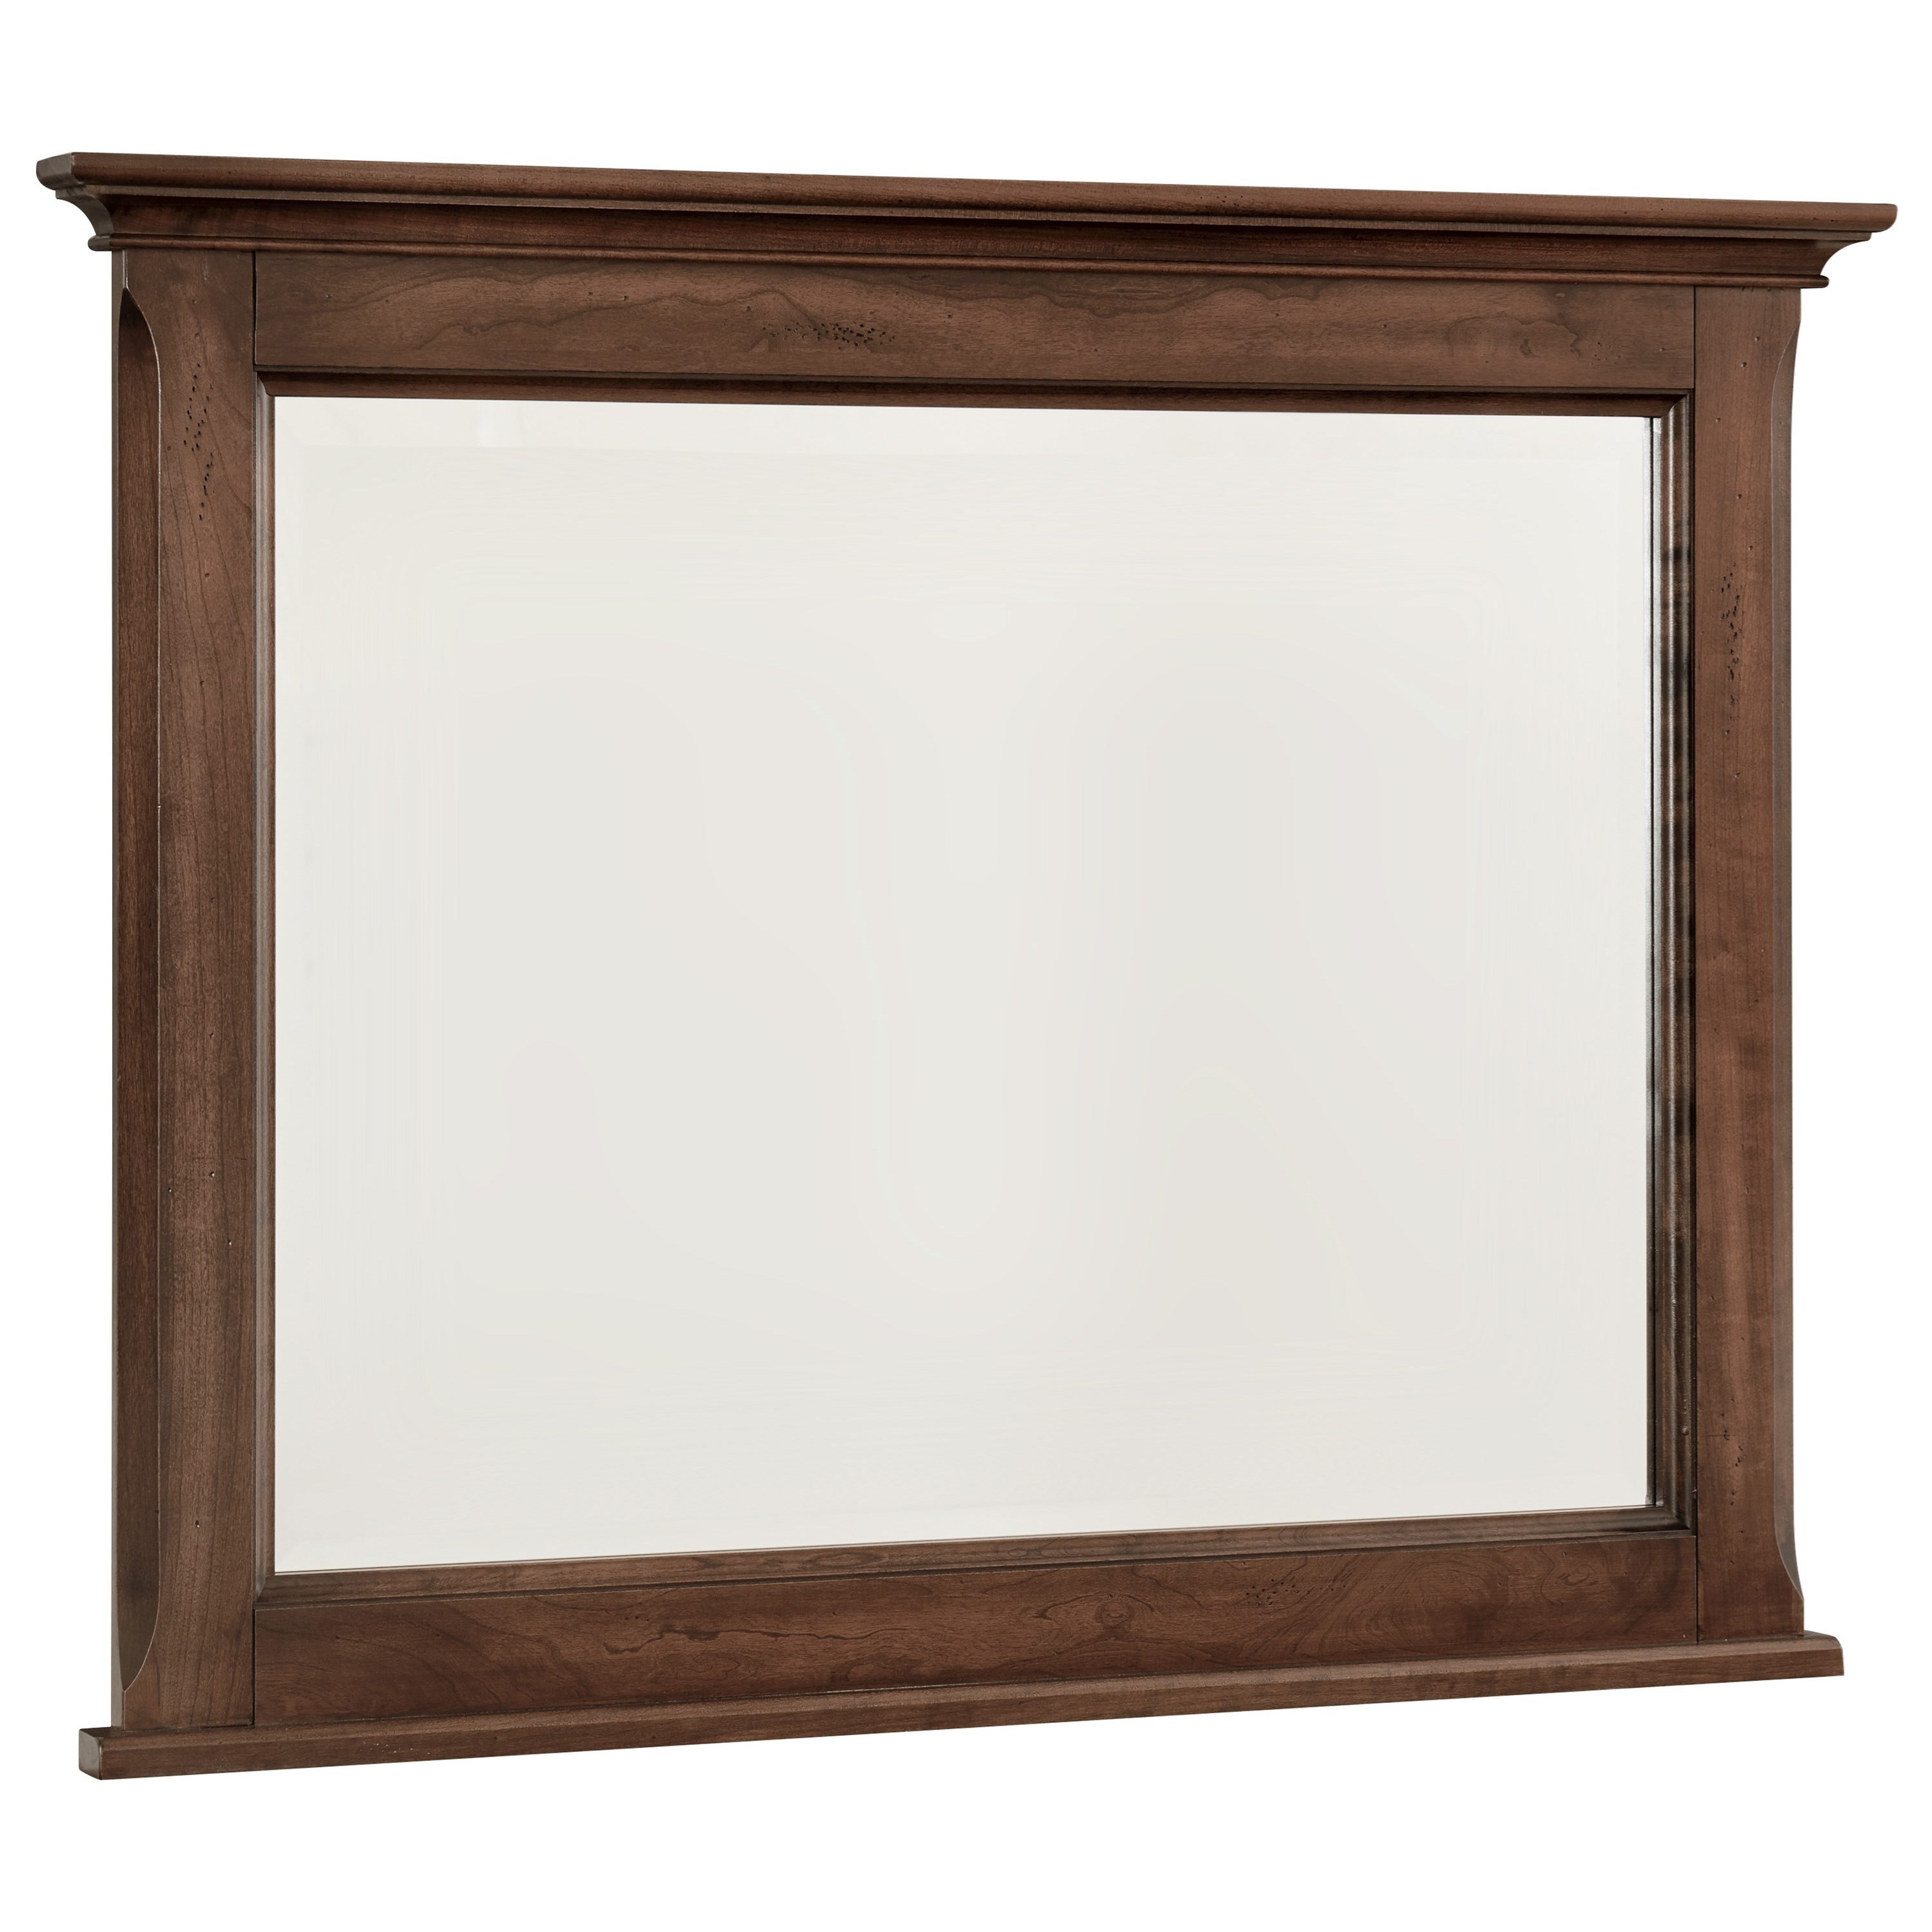 Heritage Landscape Mirror by Artisan & Post at Furniture Barn